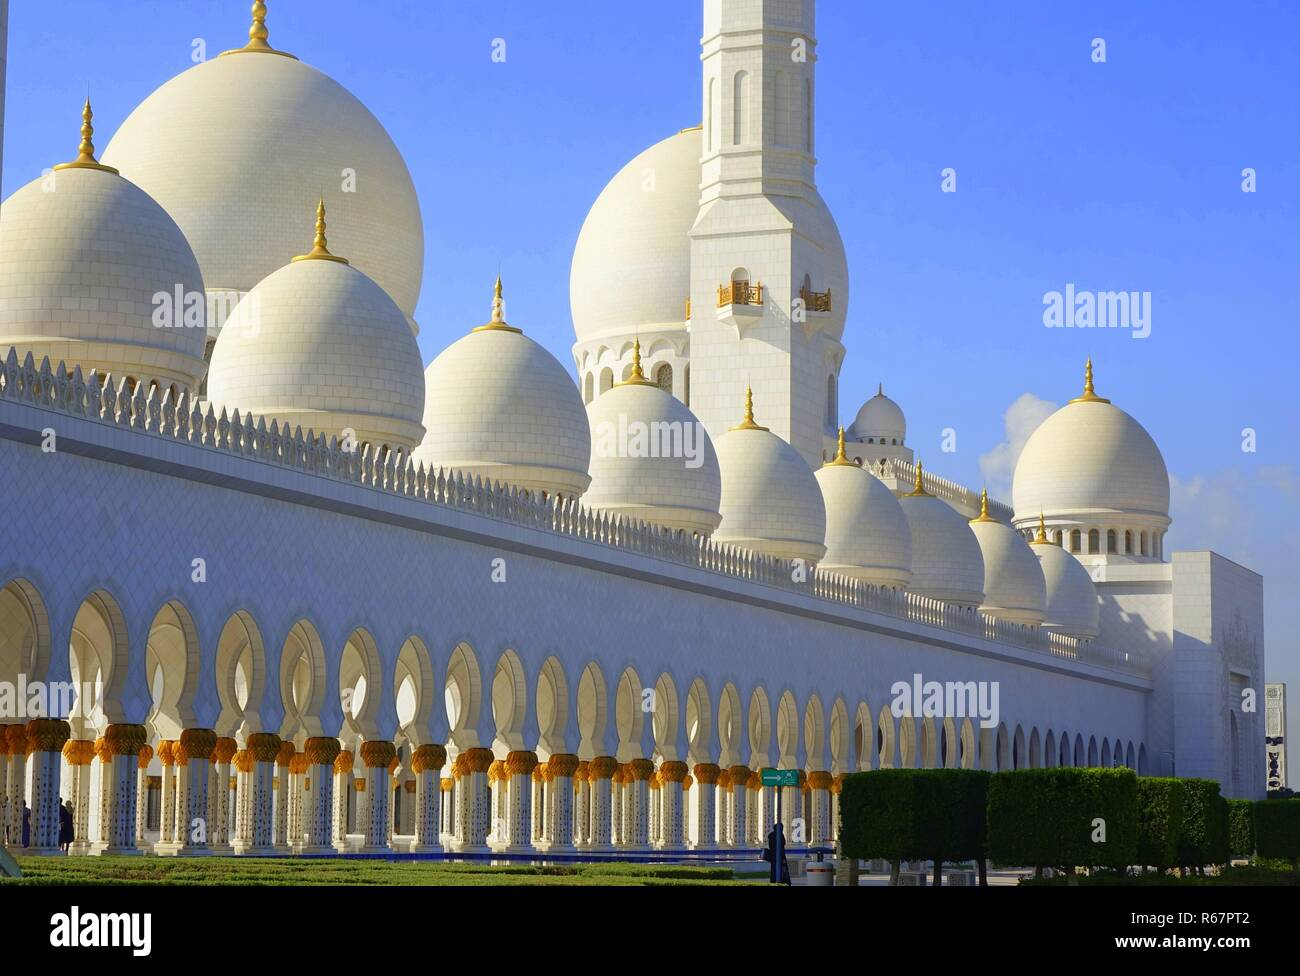 sheikh zayed mosque - Stock Image